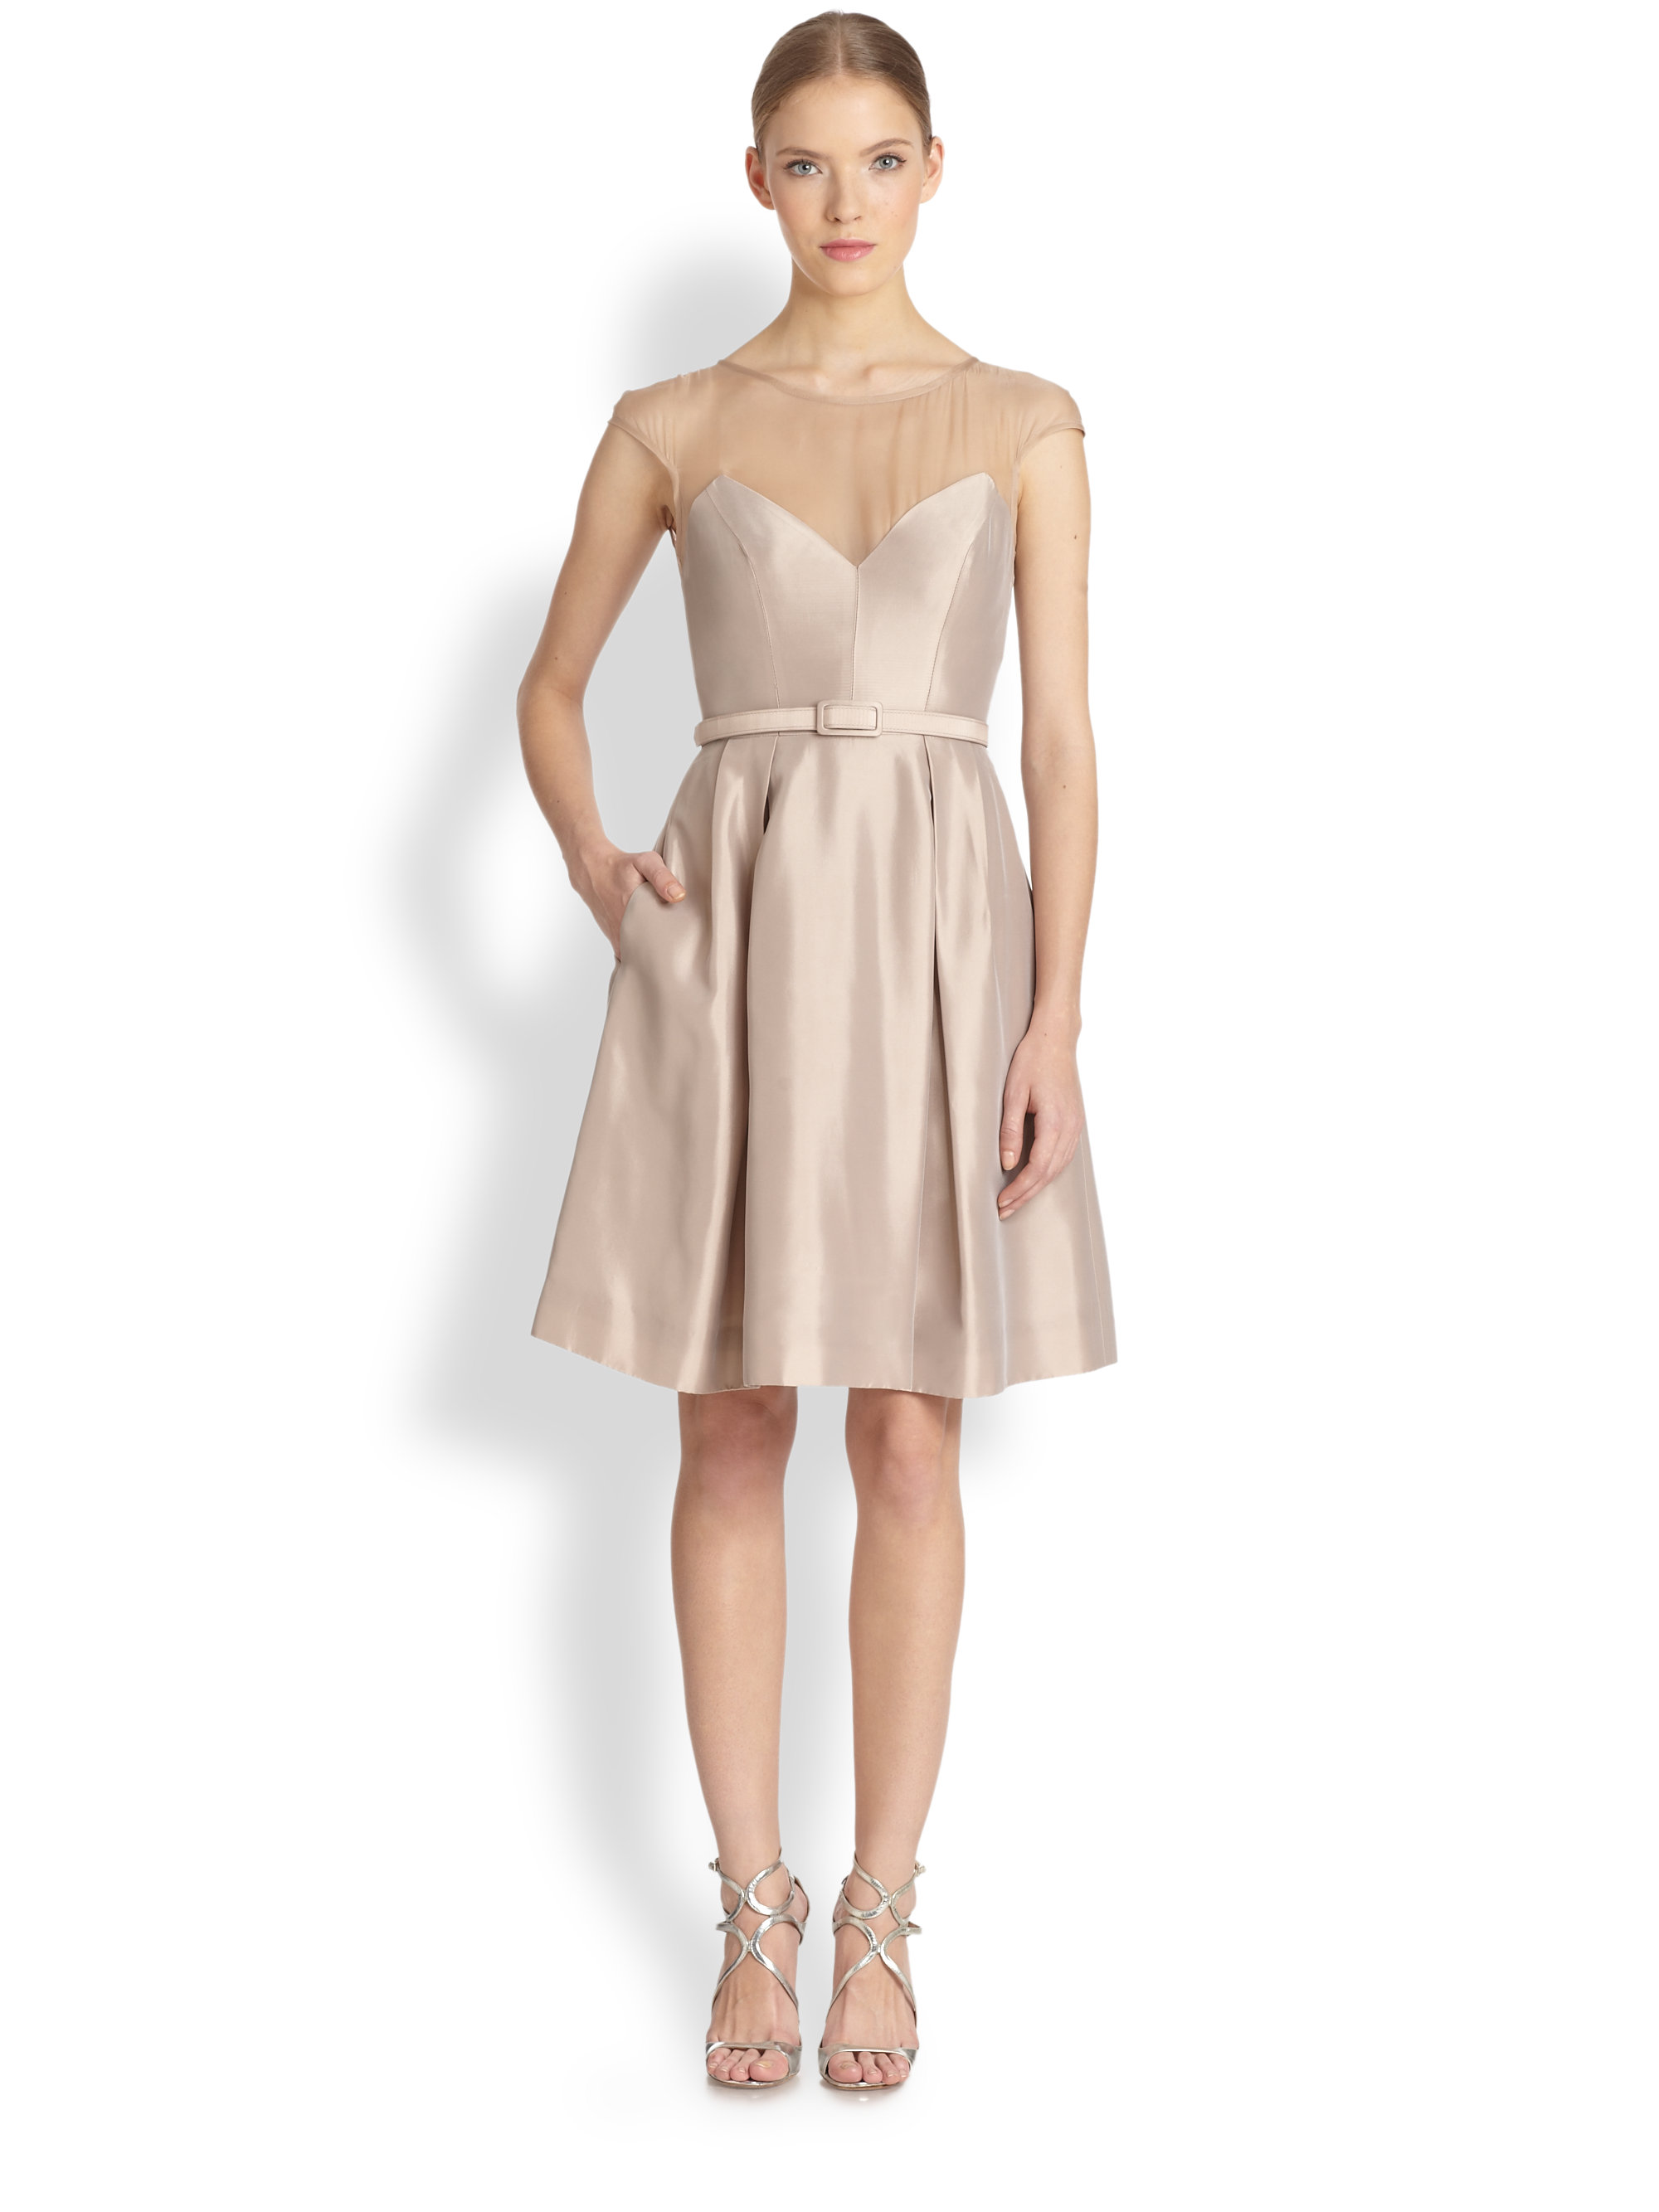 Lyst - Theia Illusion Cocktail Dress in Natural